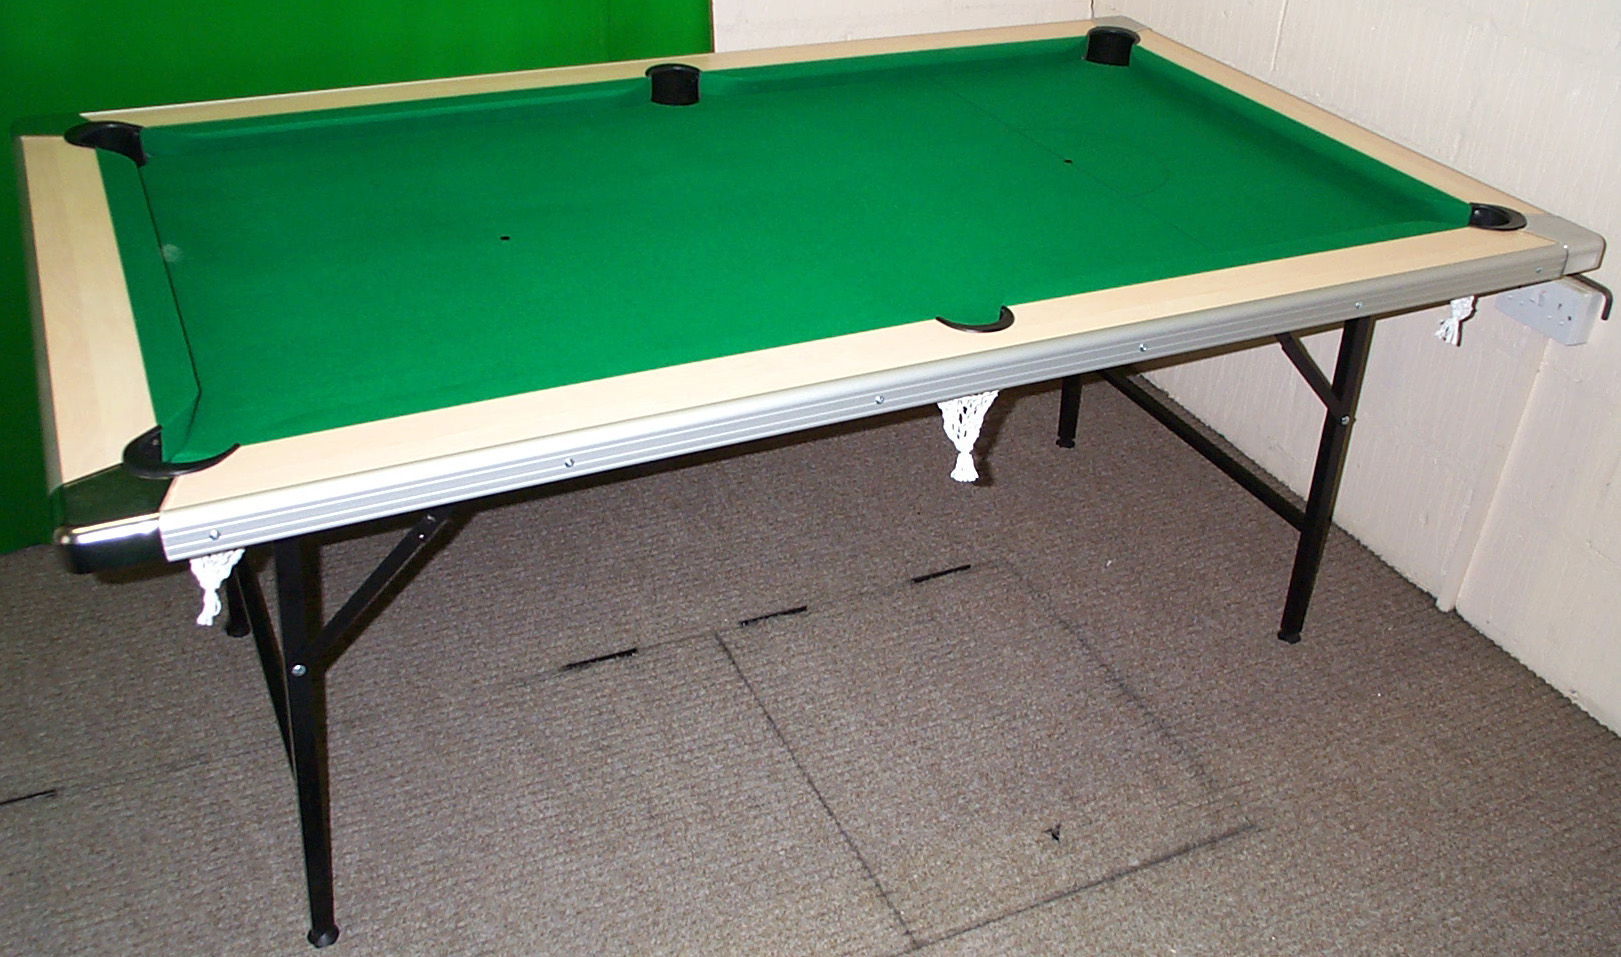 - The Snooker Shop - 6' Puma Pool Table